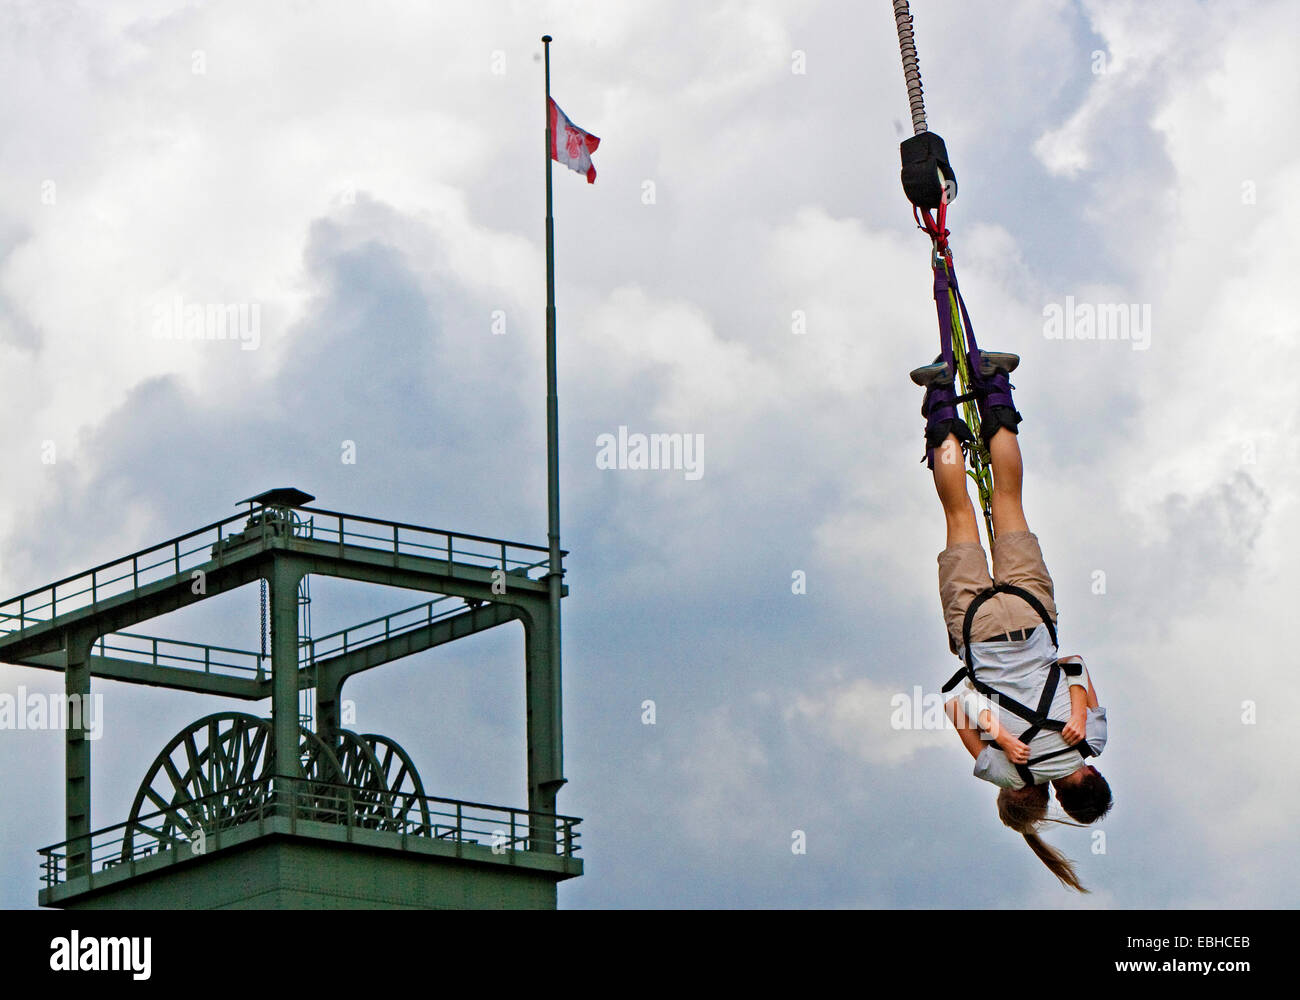 bungee jumping in front of a pit frame in Olga Park, Germany, North Rhine-Westphalia, Ruhr Area, Oberhausen Stock Photo